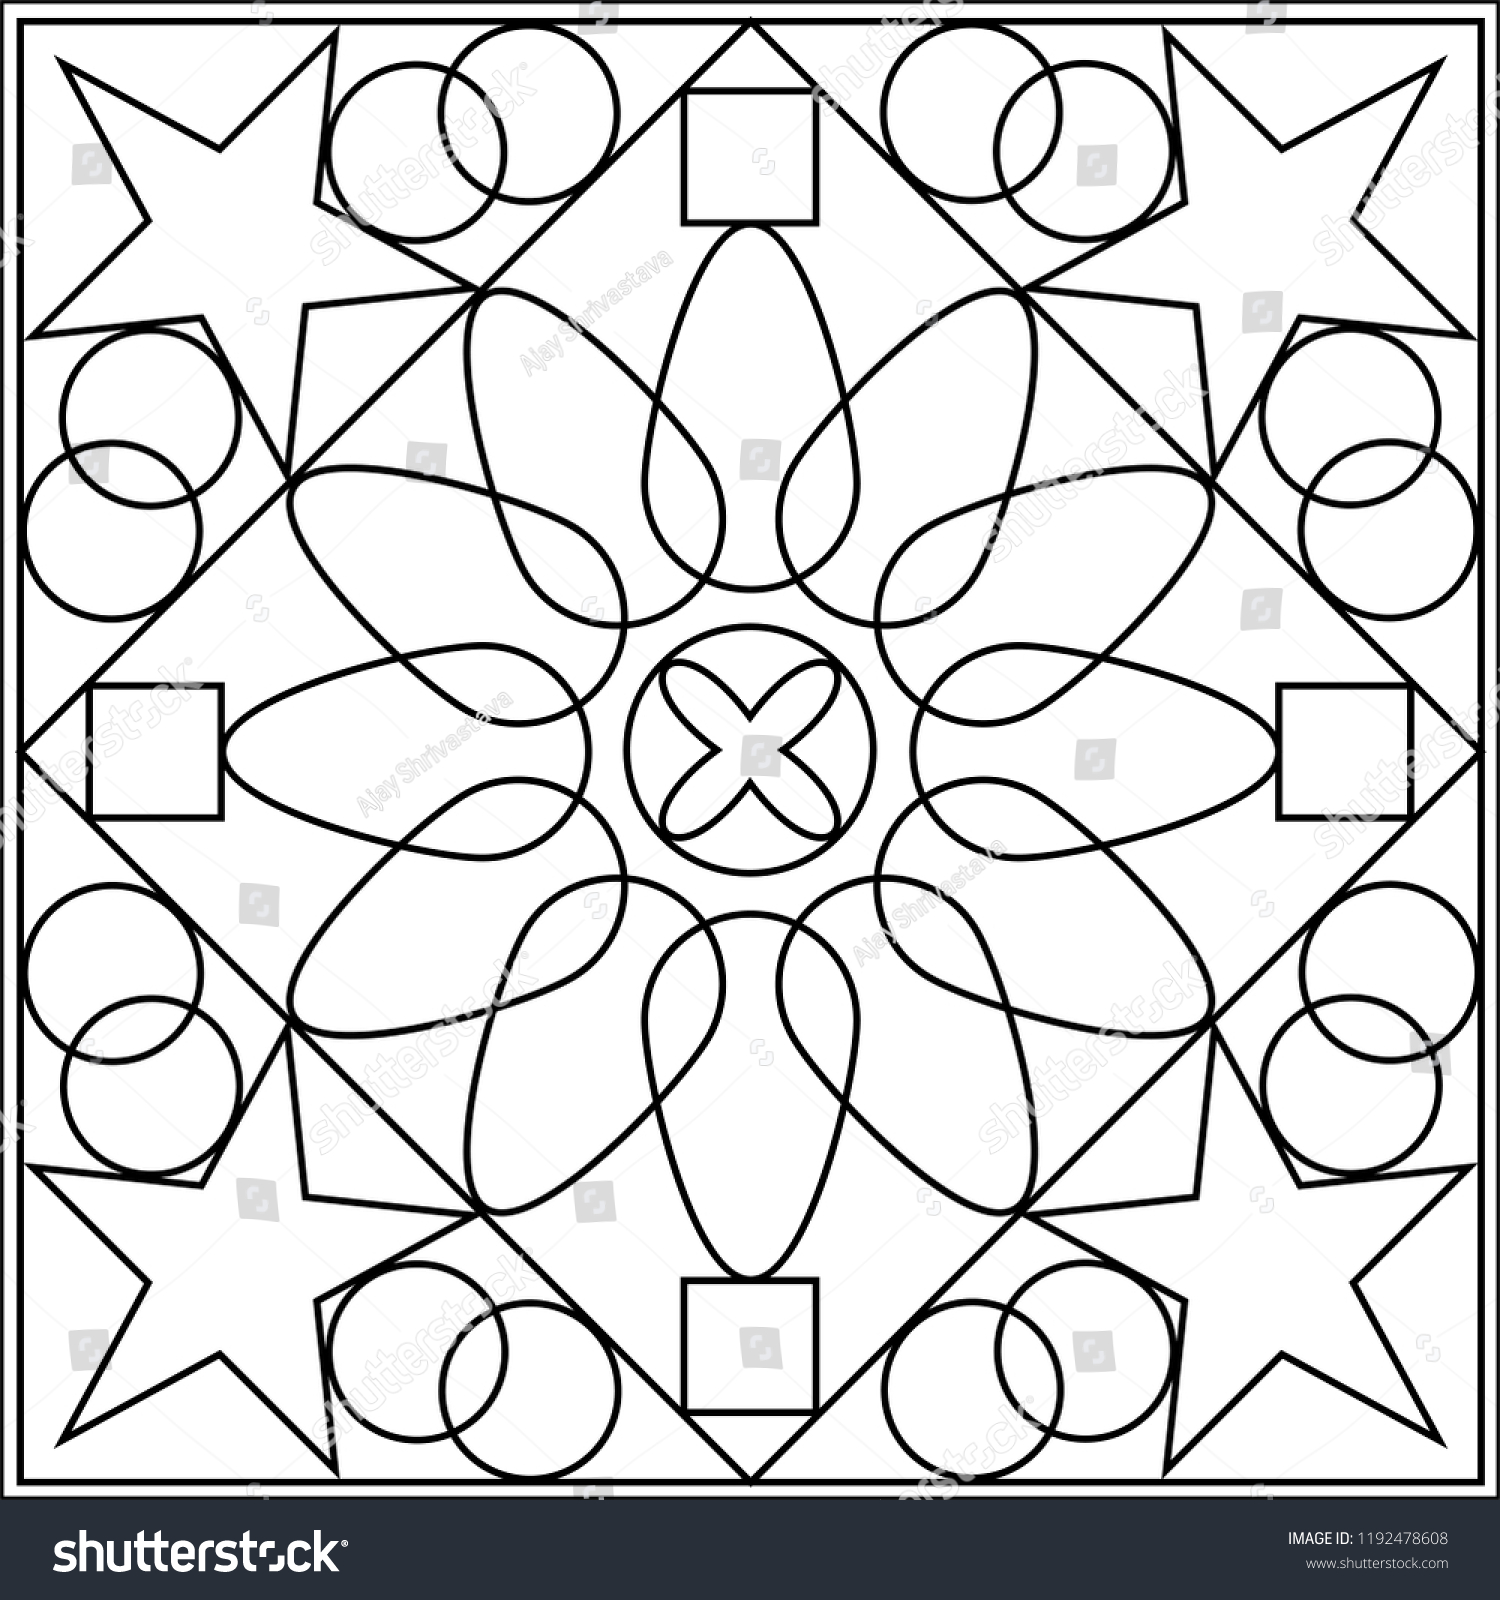 Geometric Coloring Page Geometric Shape Outline Stock Vector